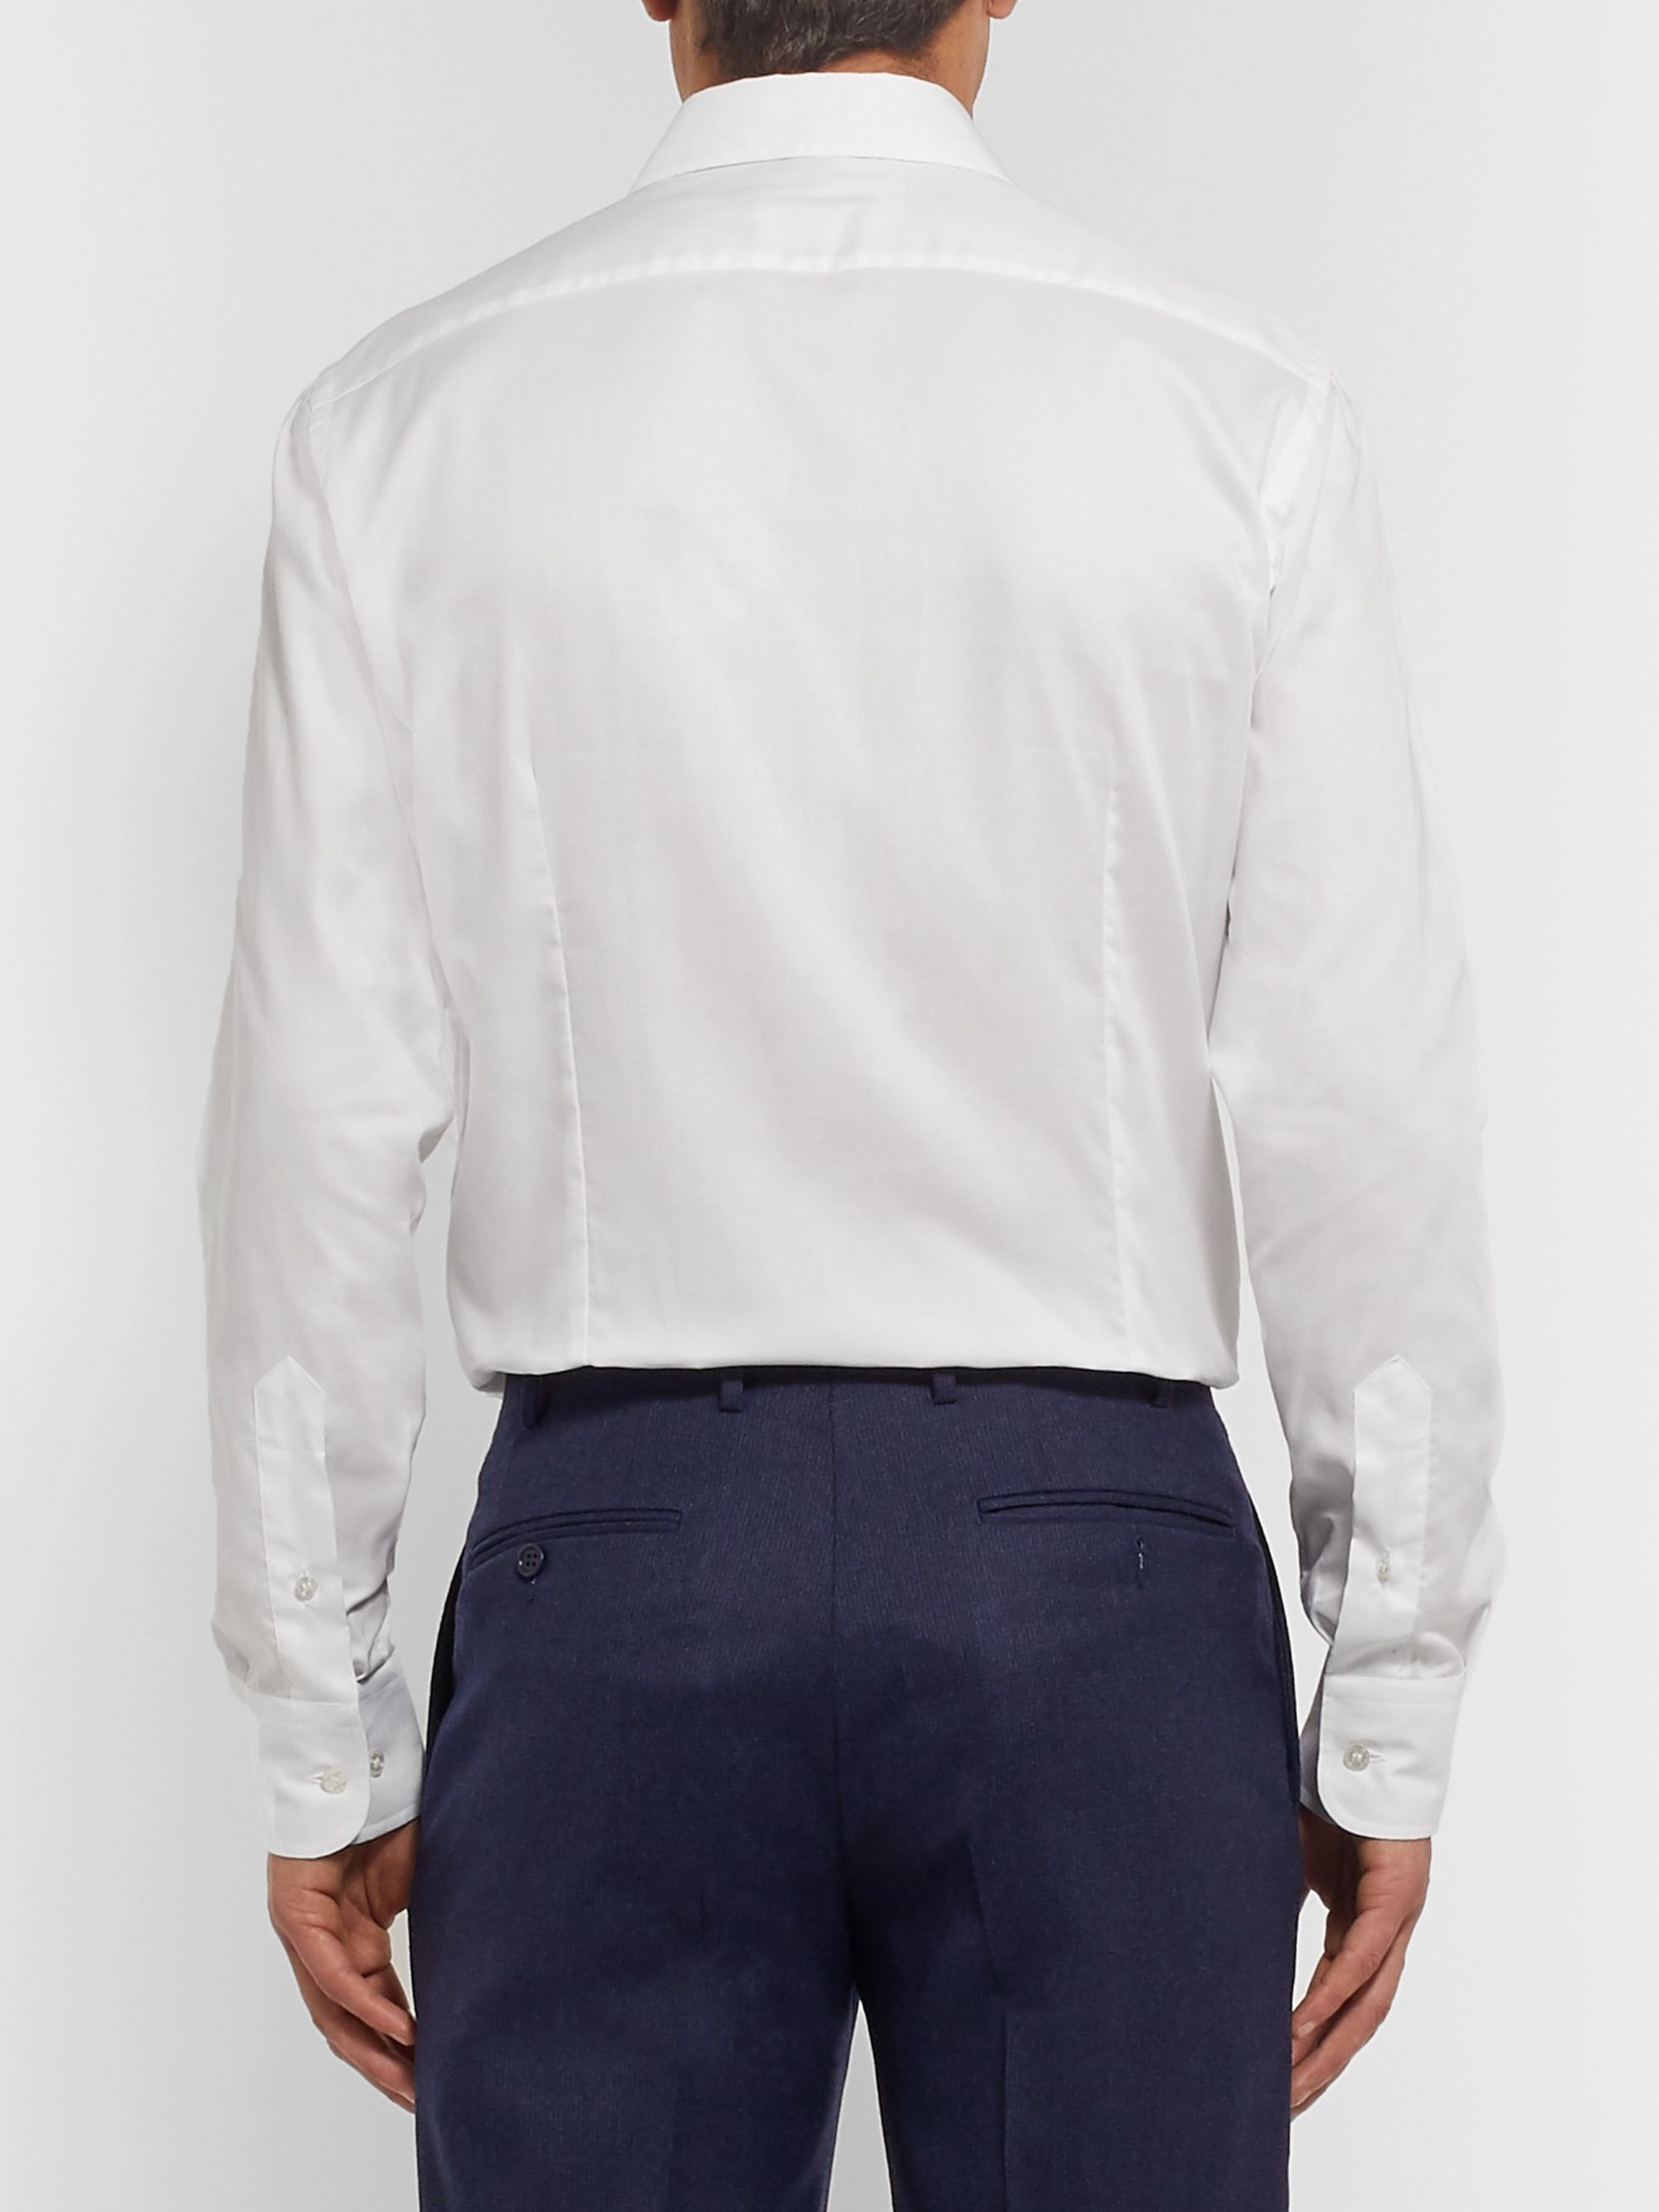 Etro White Slim-Fit Cotton Oxford Shirt